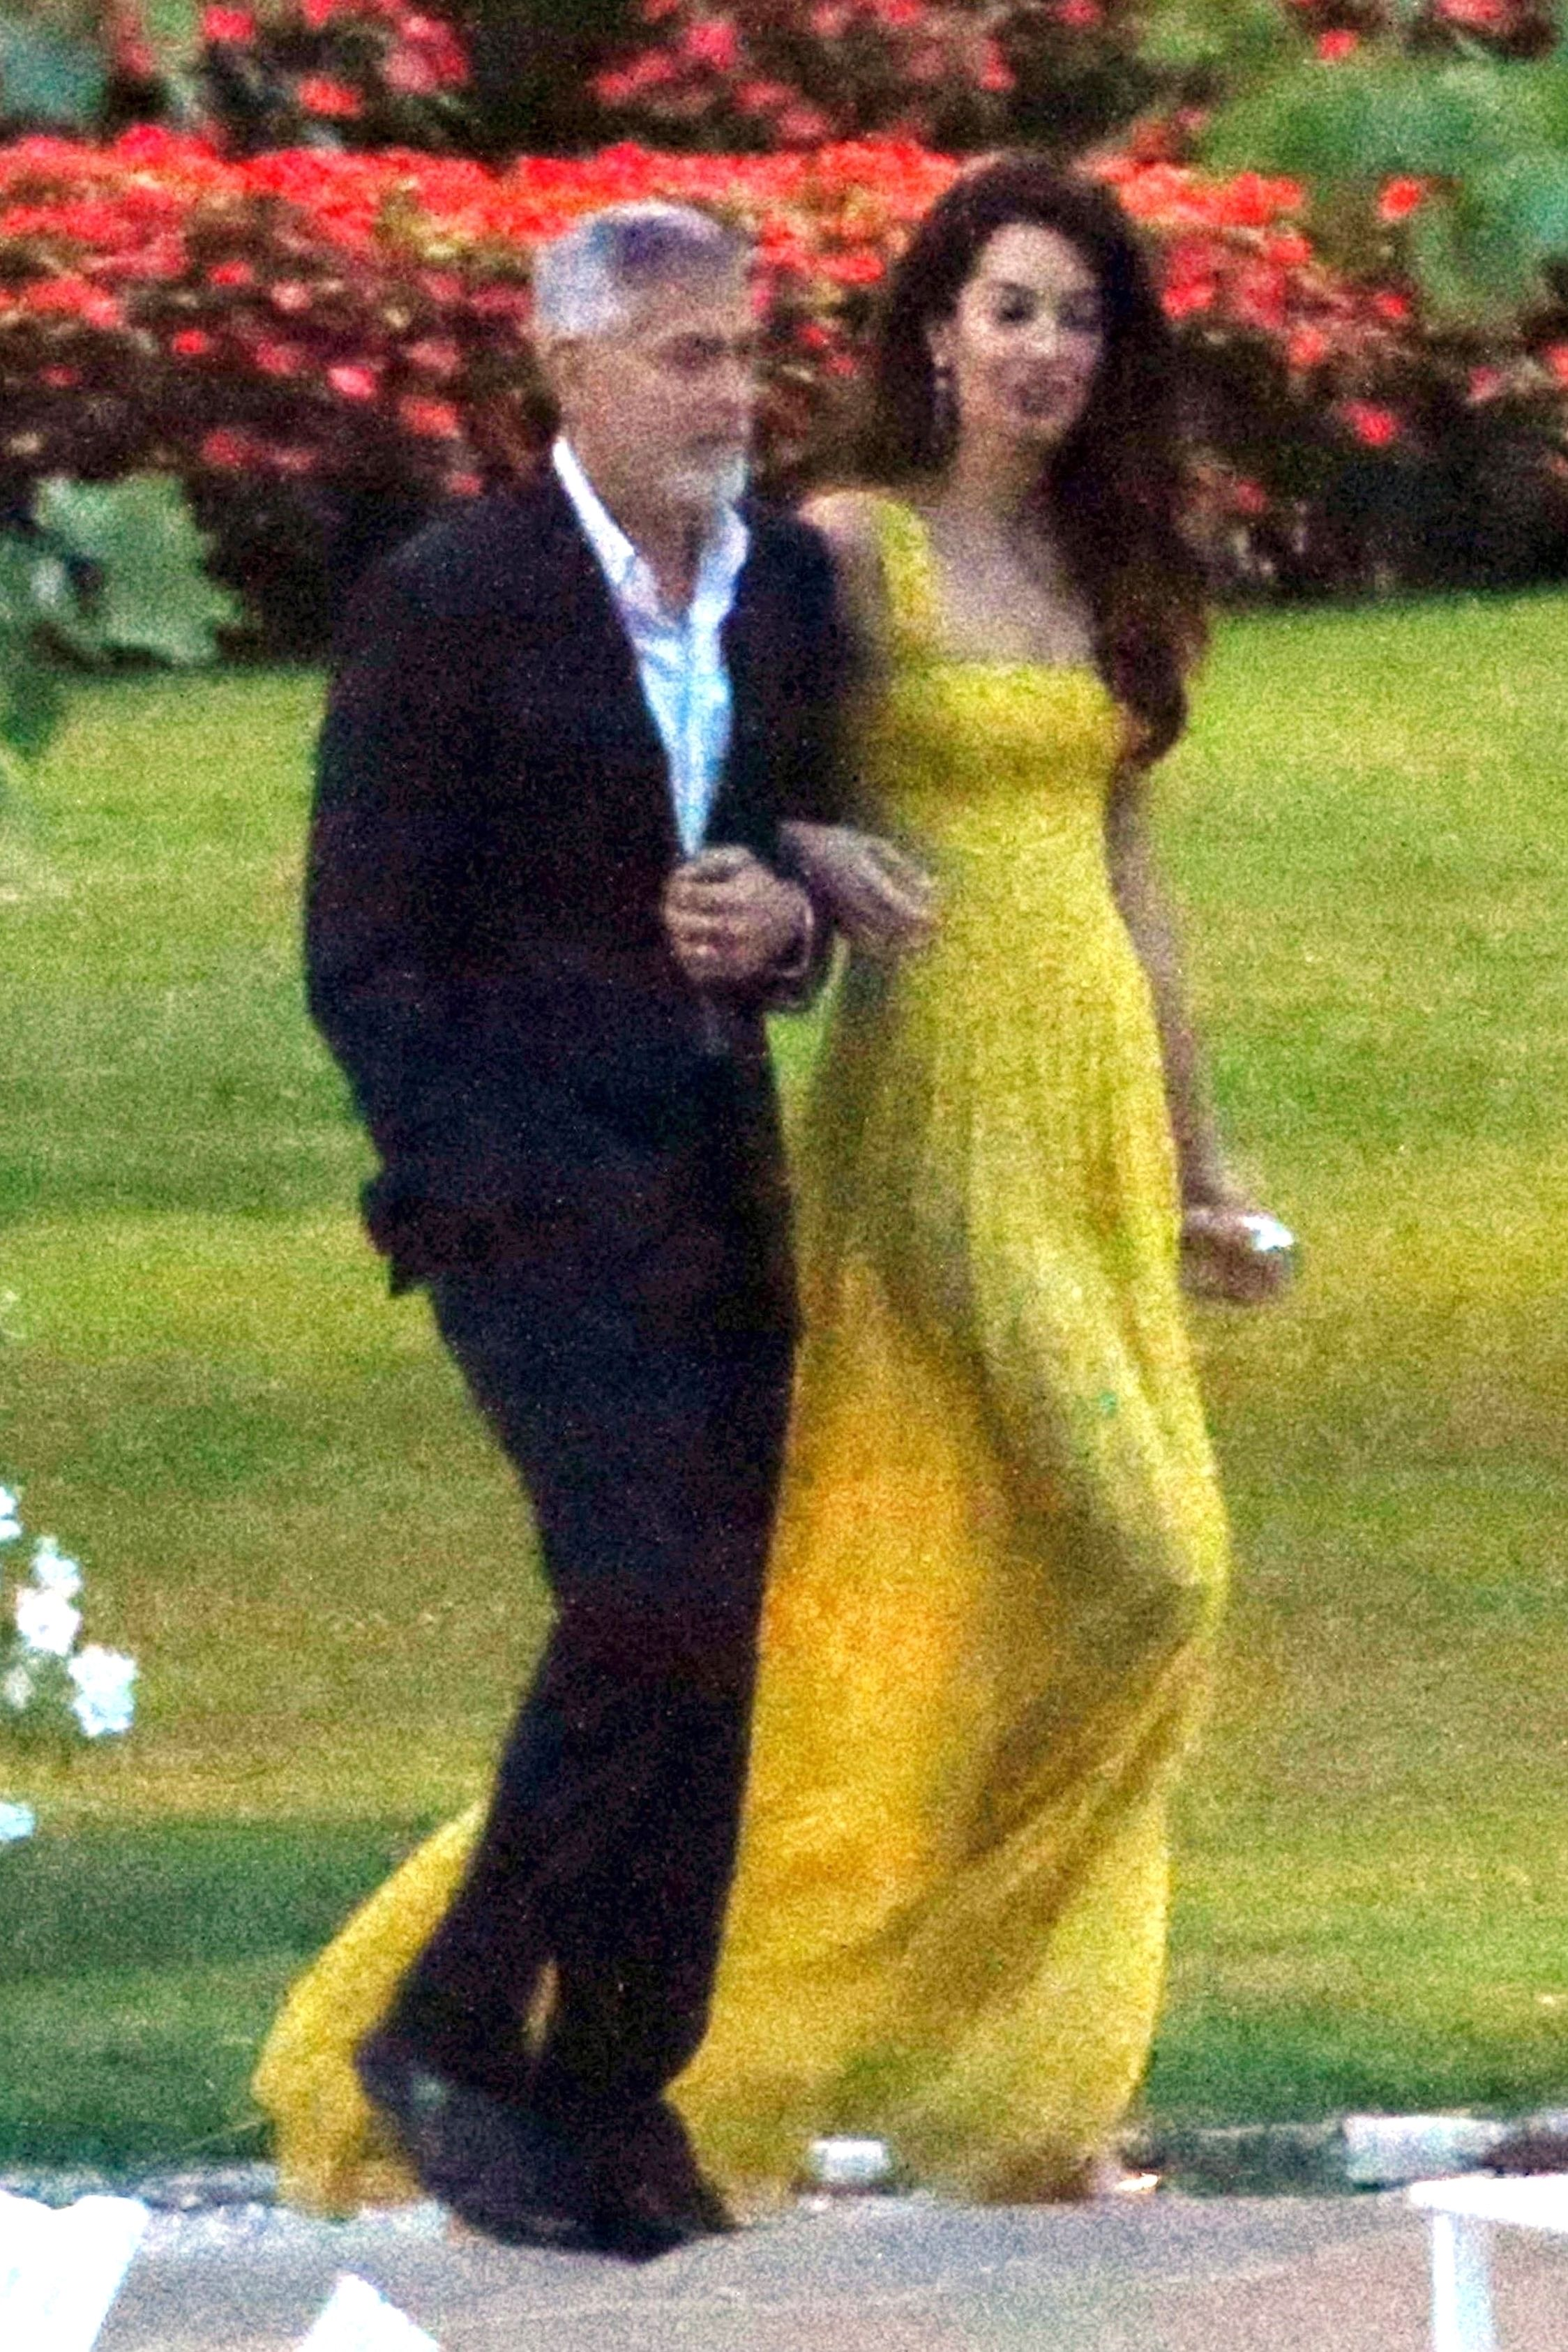 Amal Clooney Channeled Her Royal Wedding Look And Rocked